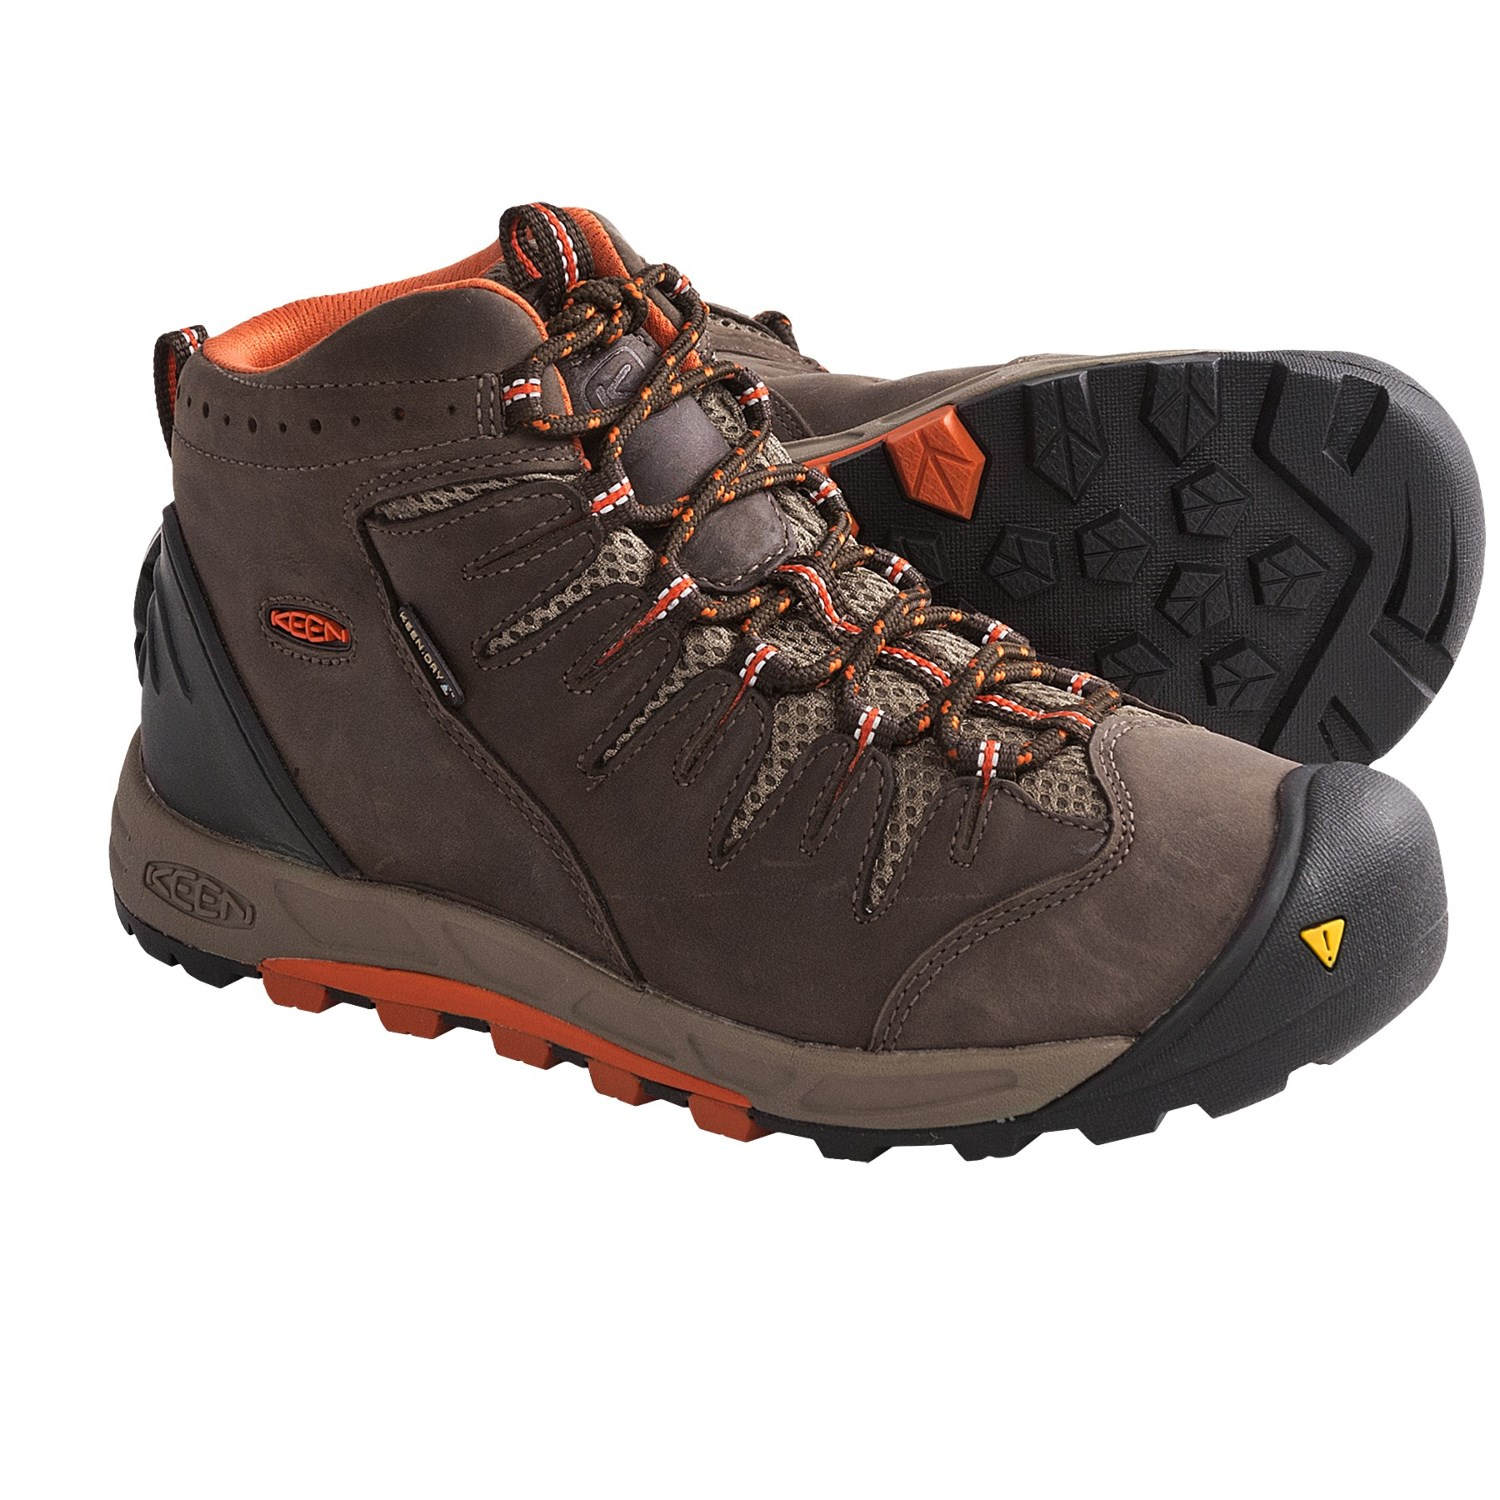 Keen Bryce Mid Hiking Boots (For Women) 6147G